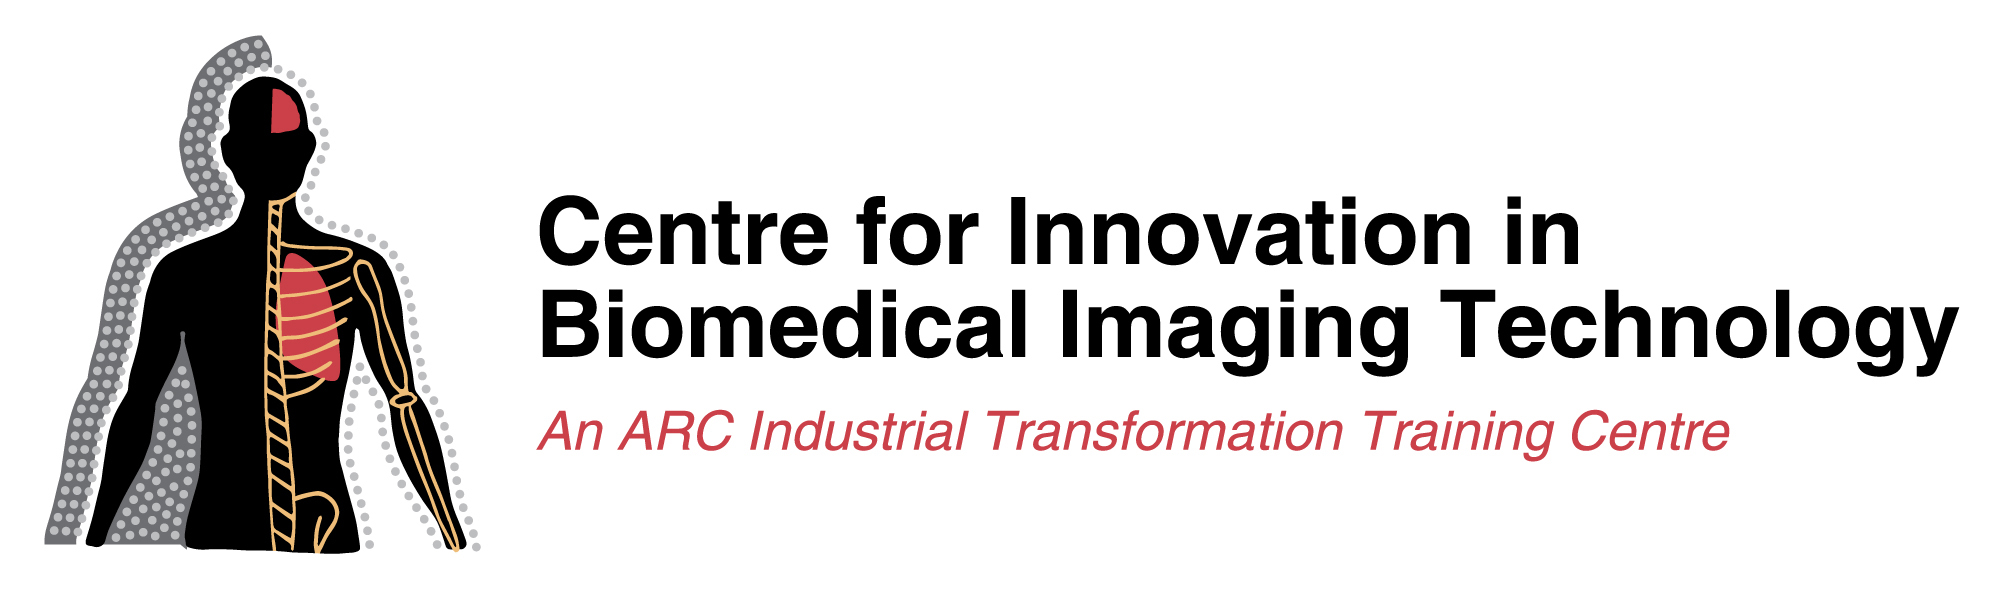 Centre for Innovation in Biomedical Imaging Technology